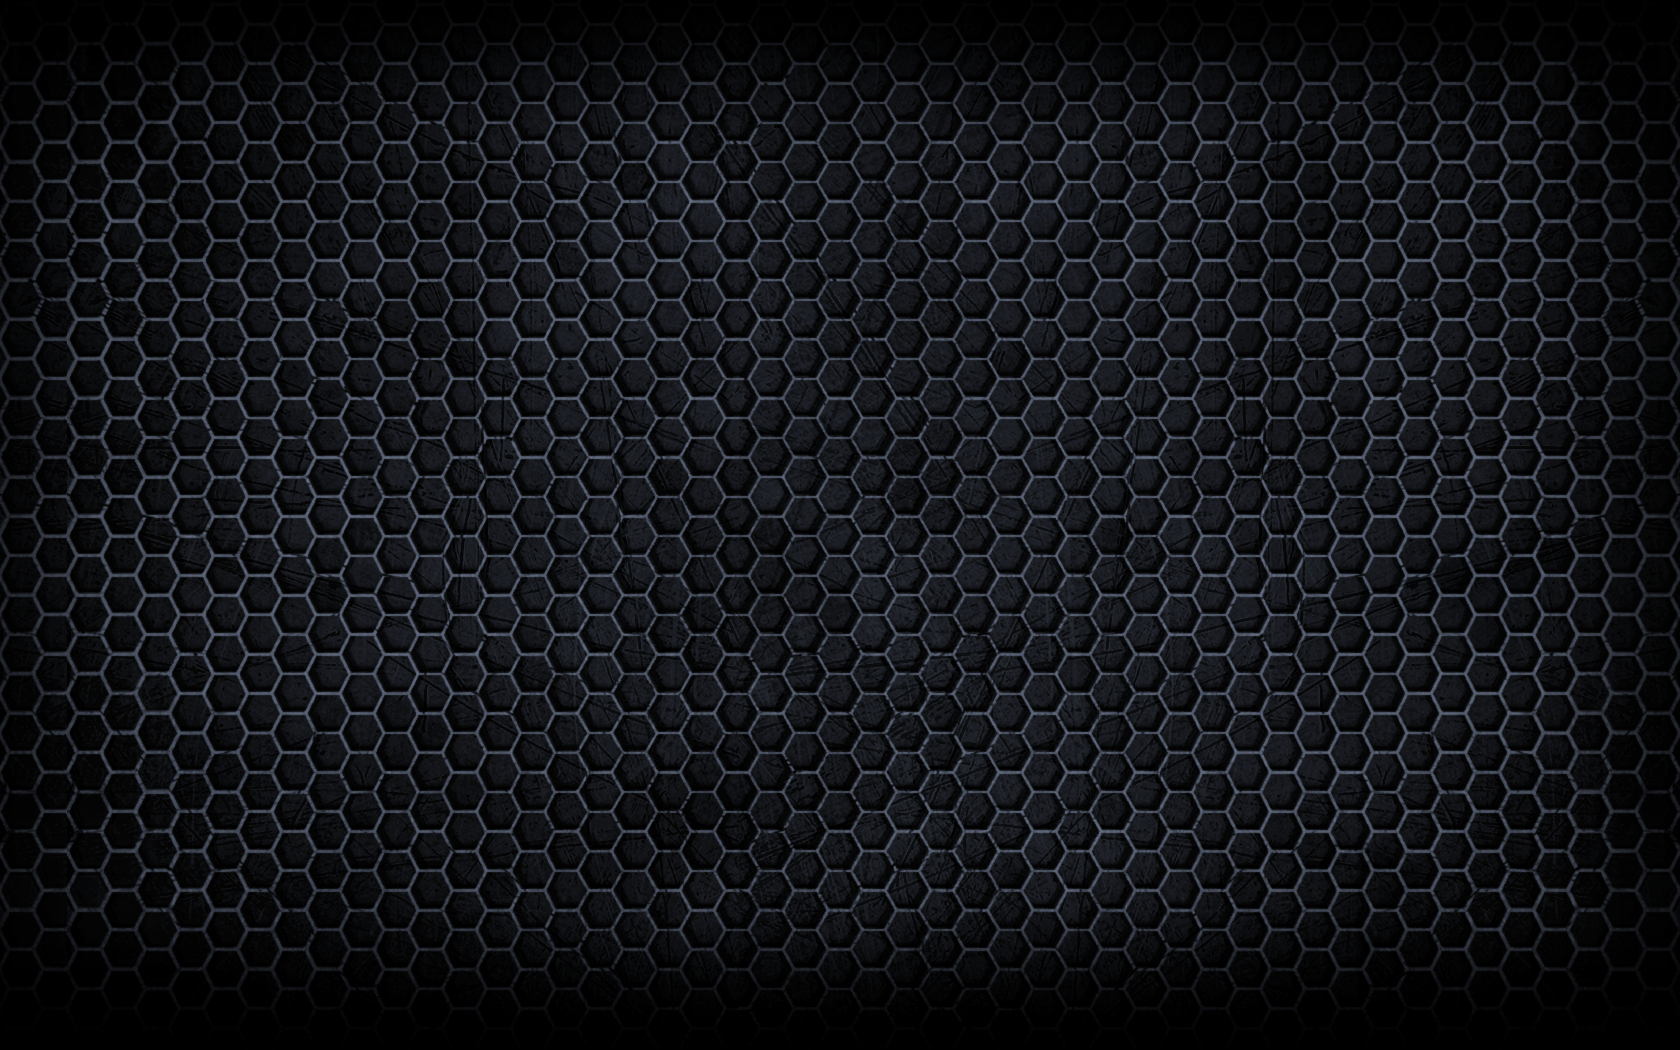 Nanosuit Texture Wallpaper 2 by blakegedye Nanosuit Texture Wallpaper 2 by blakegedye